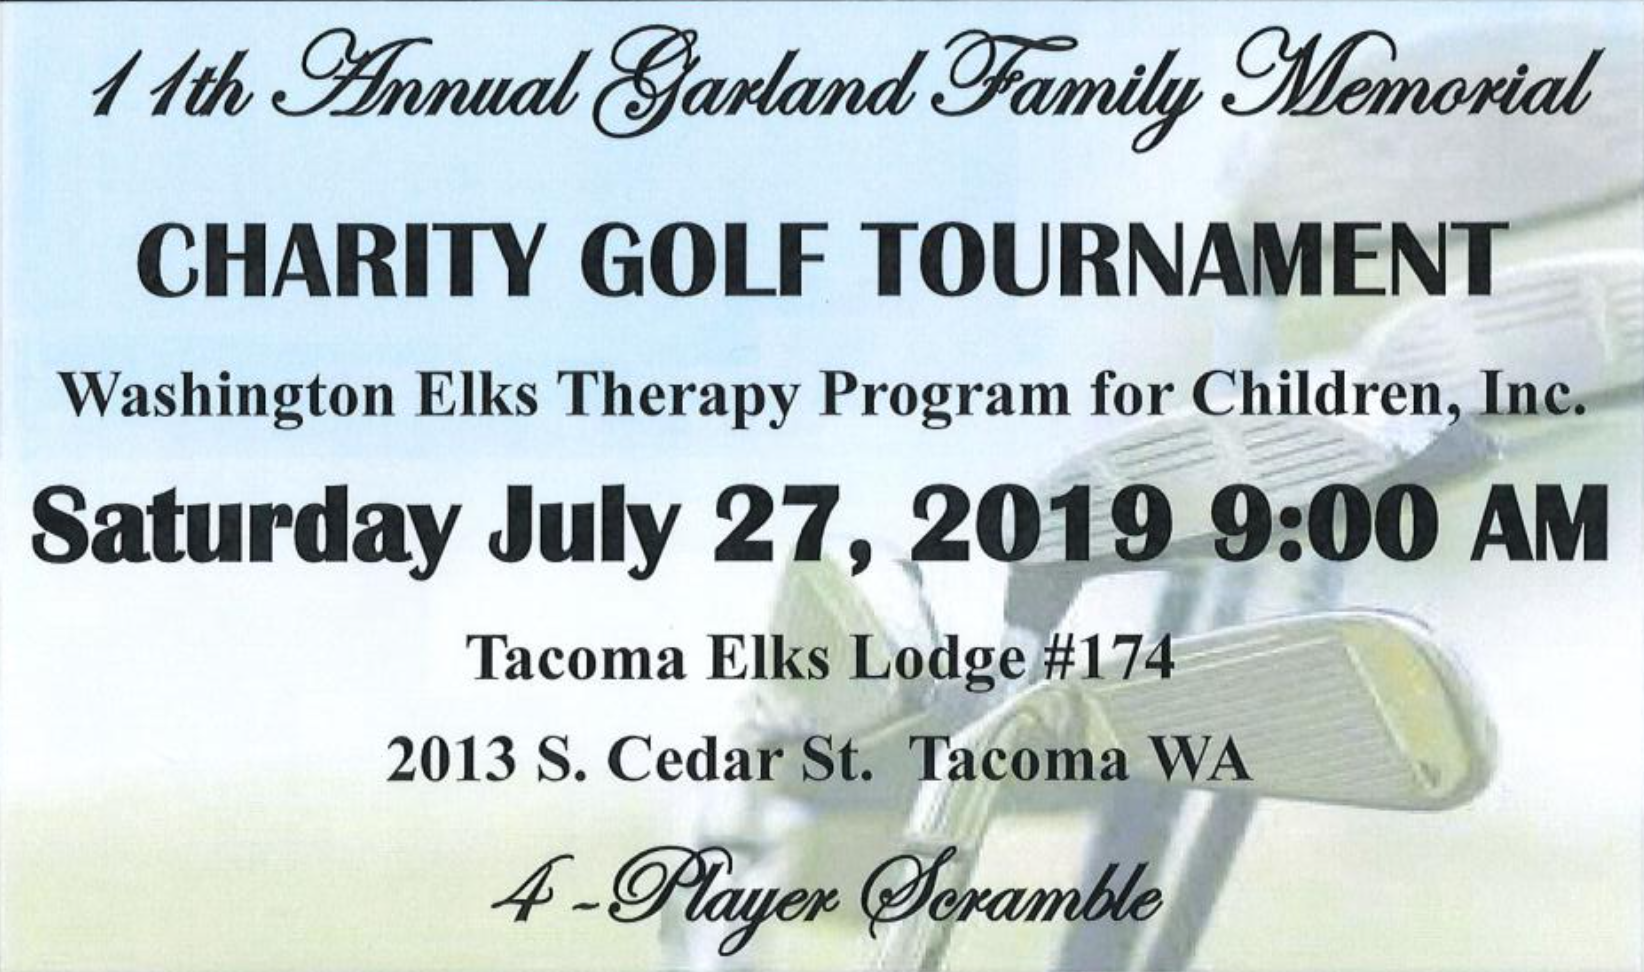 Garland Family Charity Golf Tournament – Washington State Elks